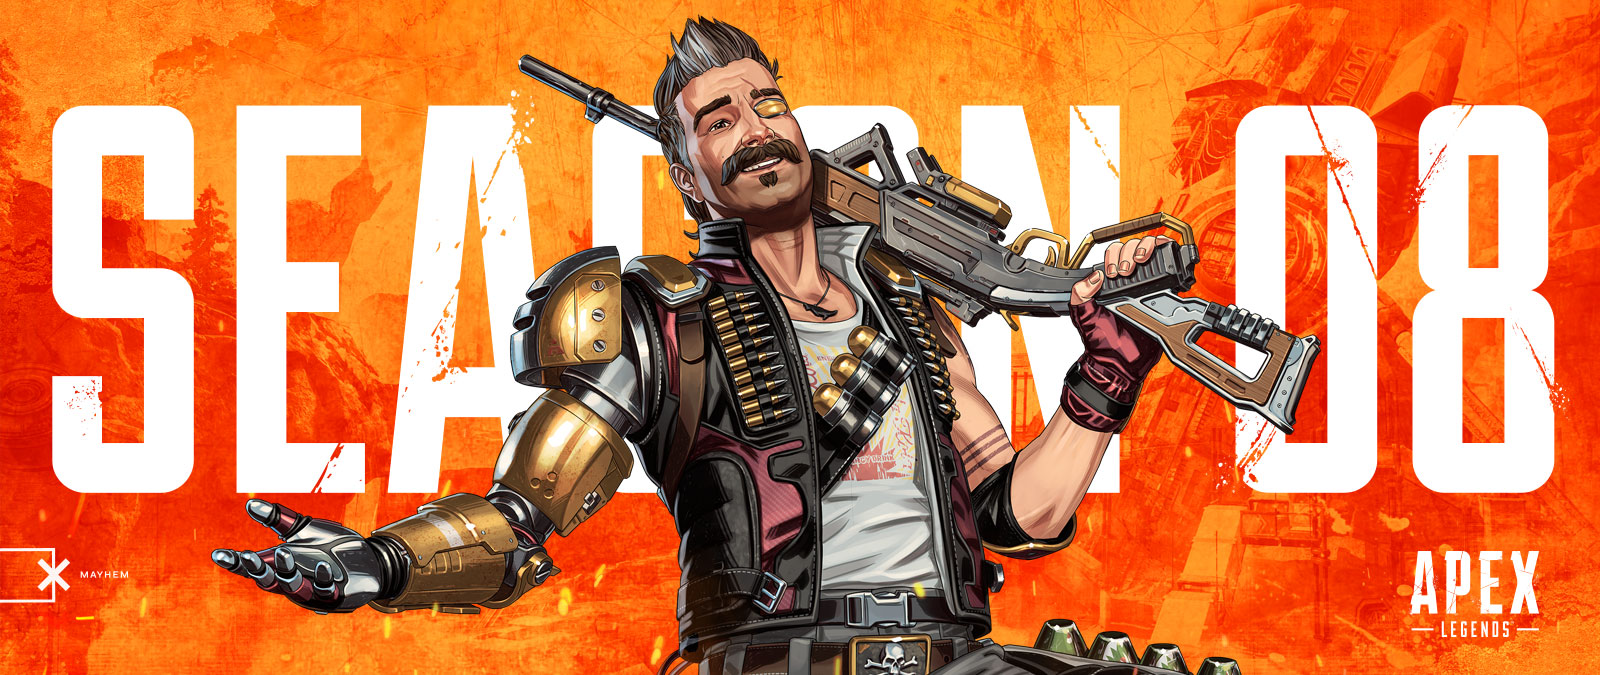 Apex Legends, Season 08, Mayhem, New hero Fuse smiles and poses with his 30-30 gun.